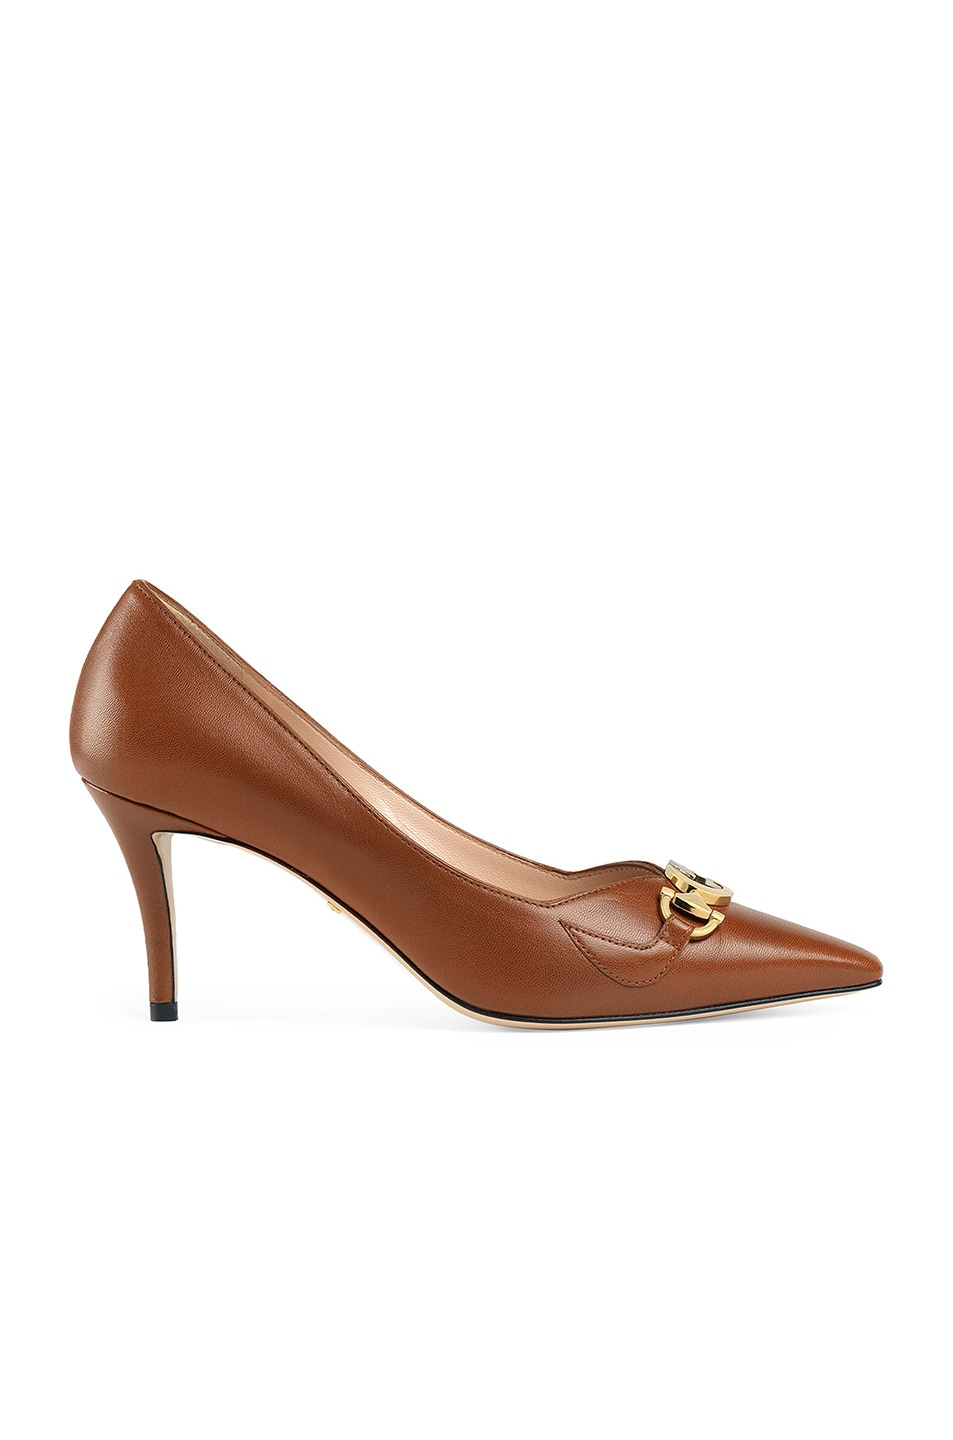 Image 1 of Gucci Low Heel Pumps in Brown Papaya